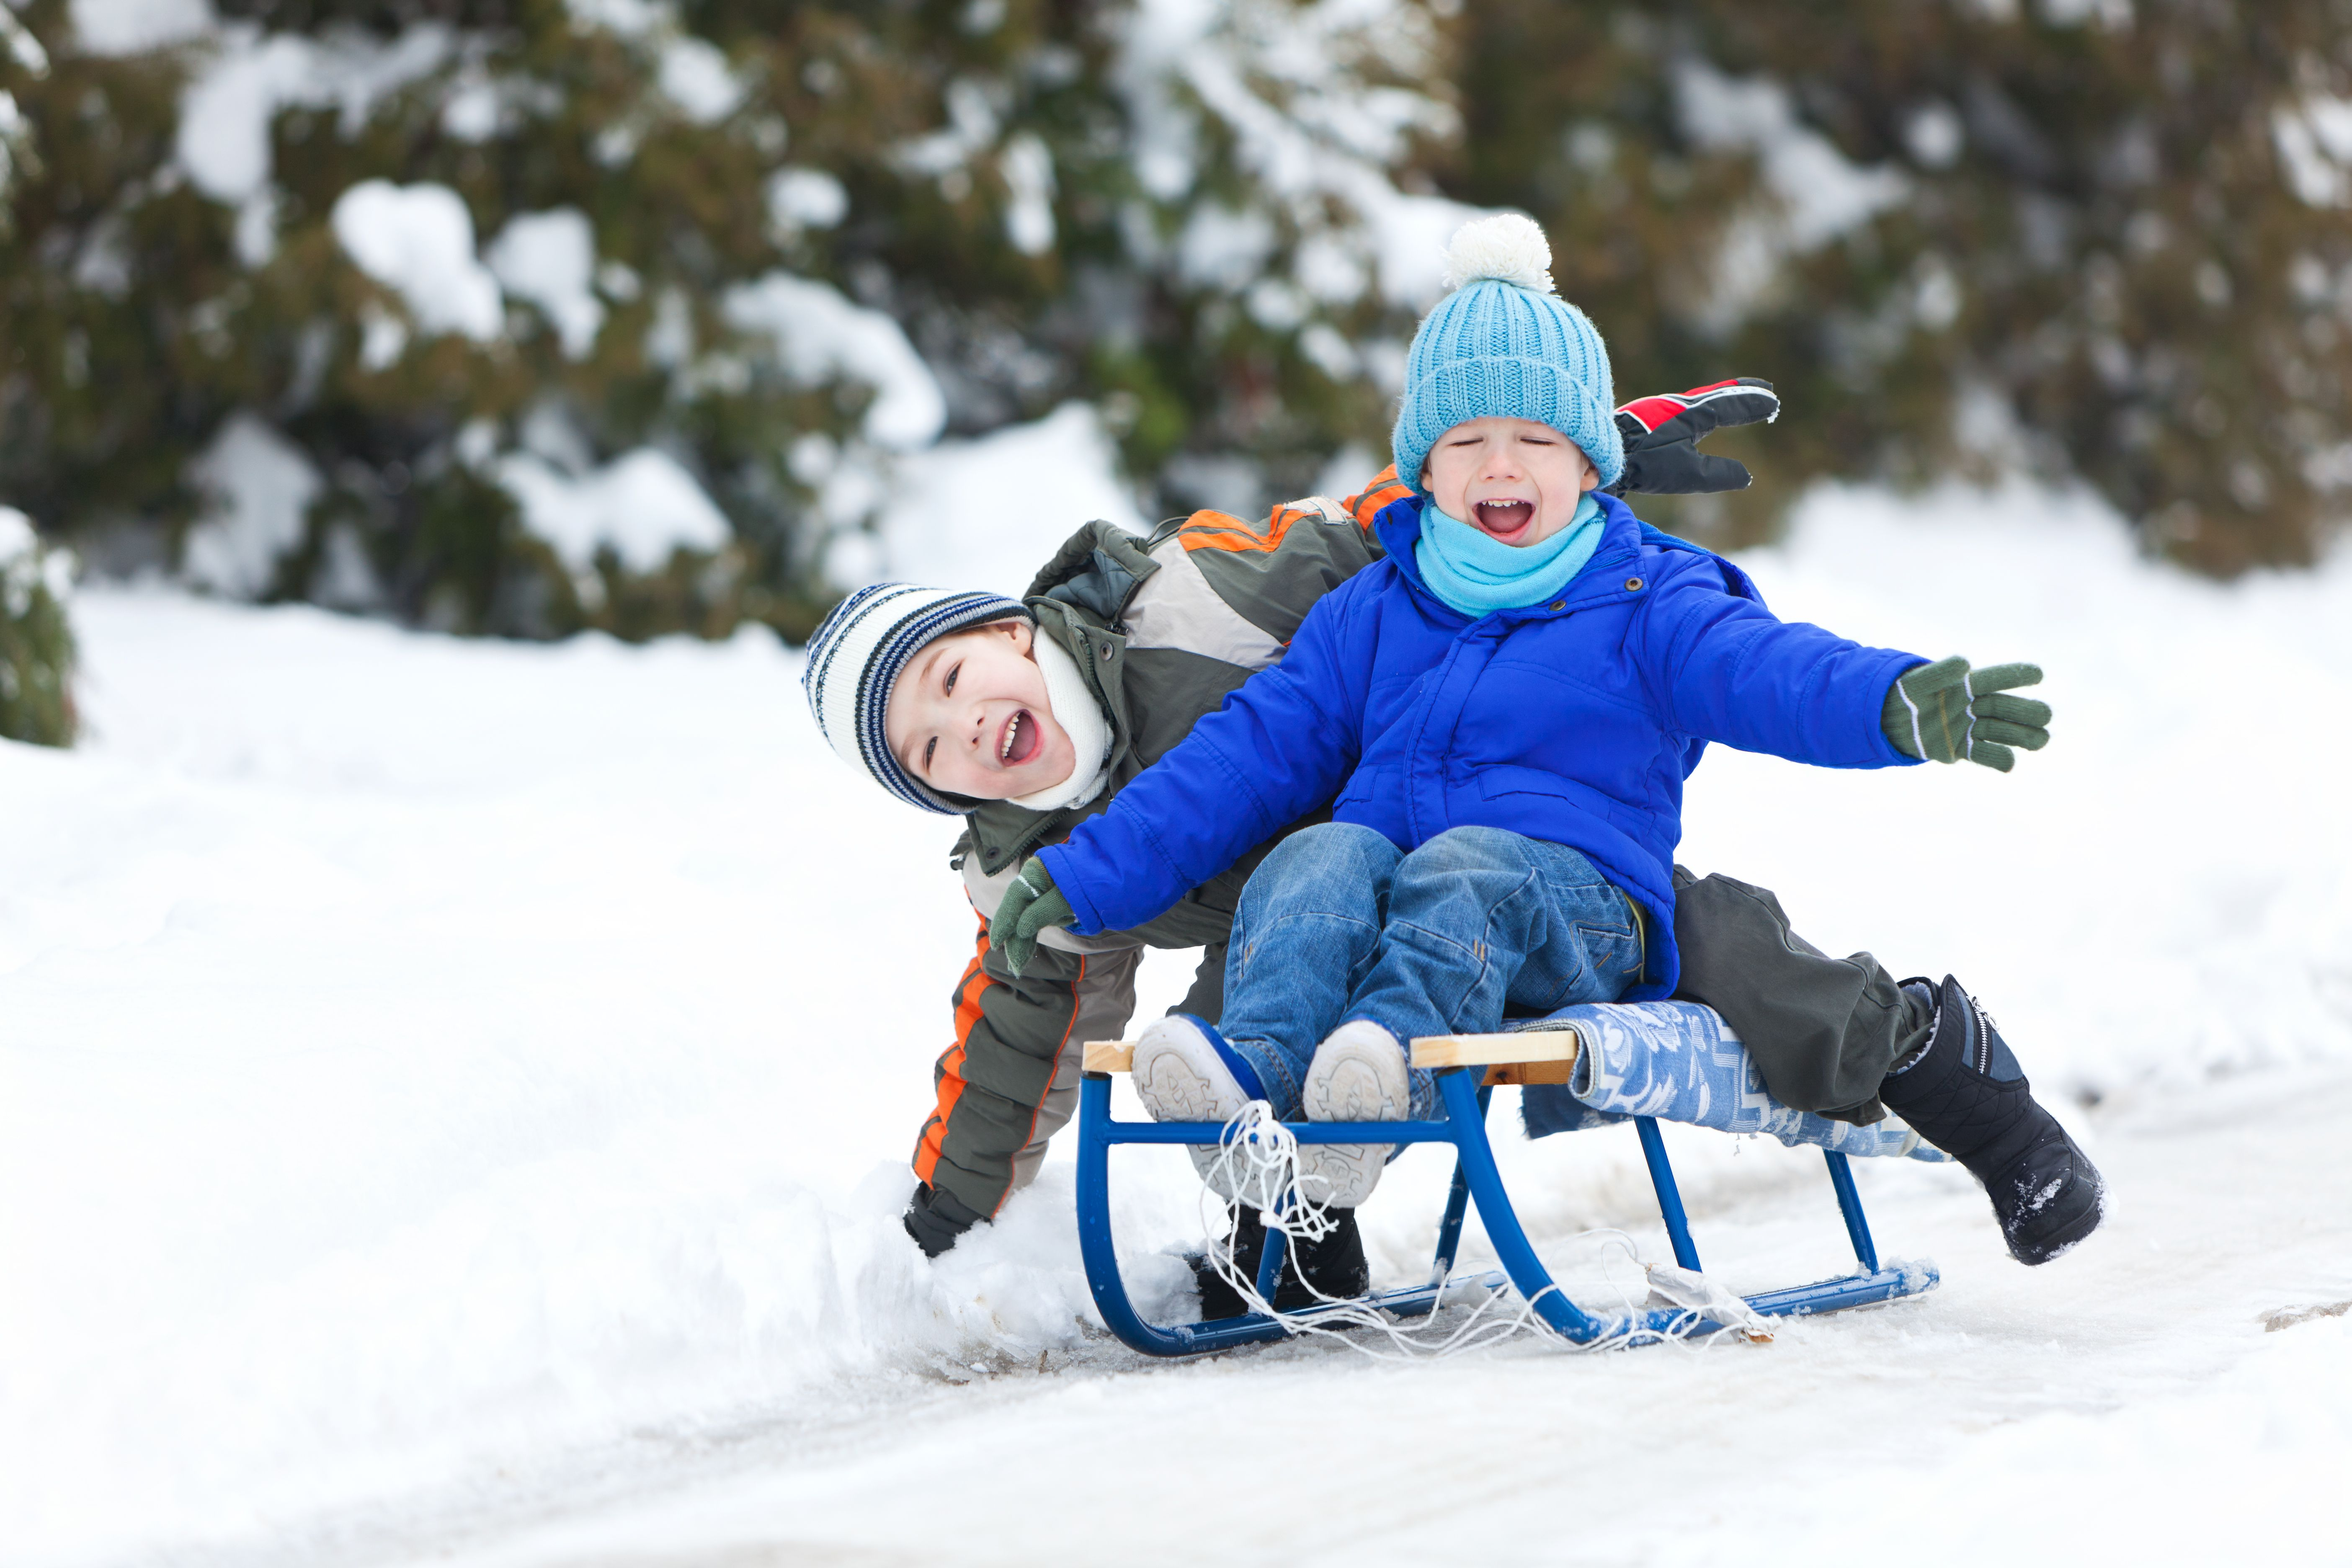 Snow Toys For Kids Of All Ages